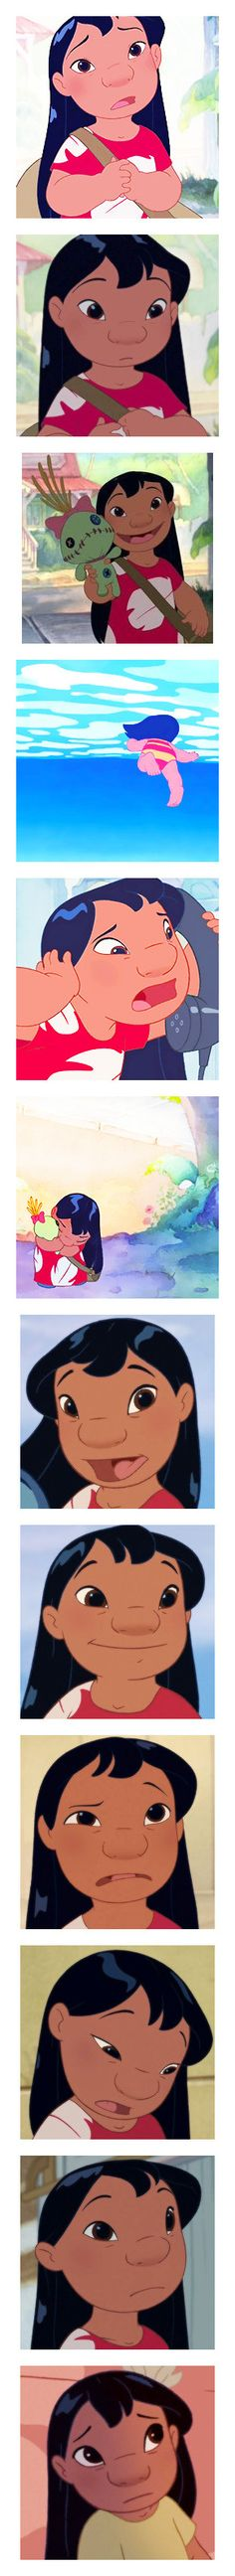 """Lilo Pelekai"" by bambolinadicarta-1 ❤ liked on Polyvore featuring disney, Lilo, lilopelekai, pics, dark olive, dresses, women's clothing, quotes, feelings and pictures"